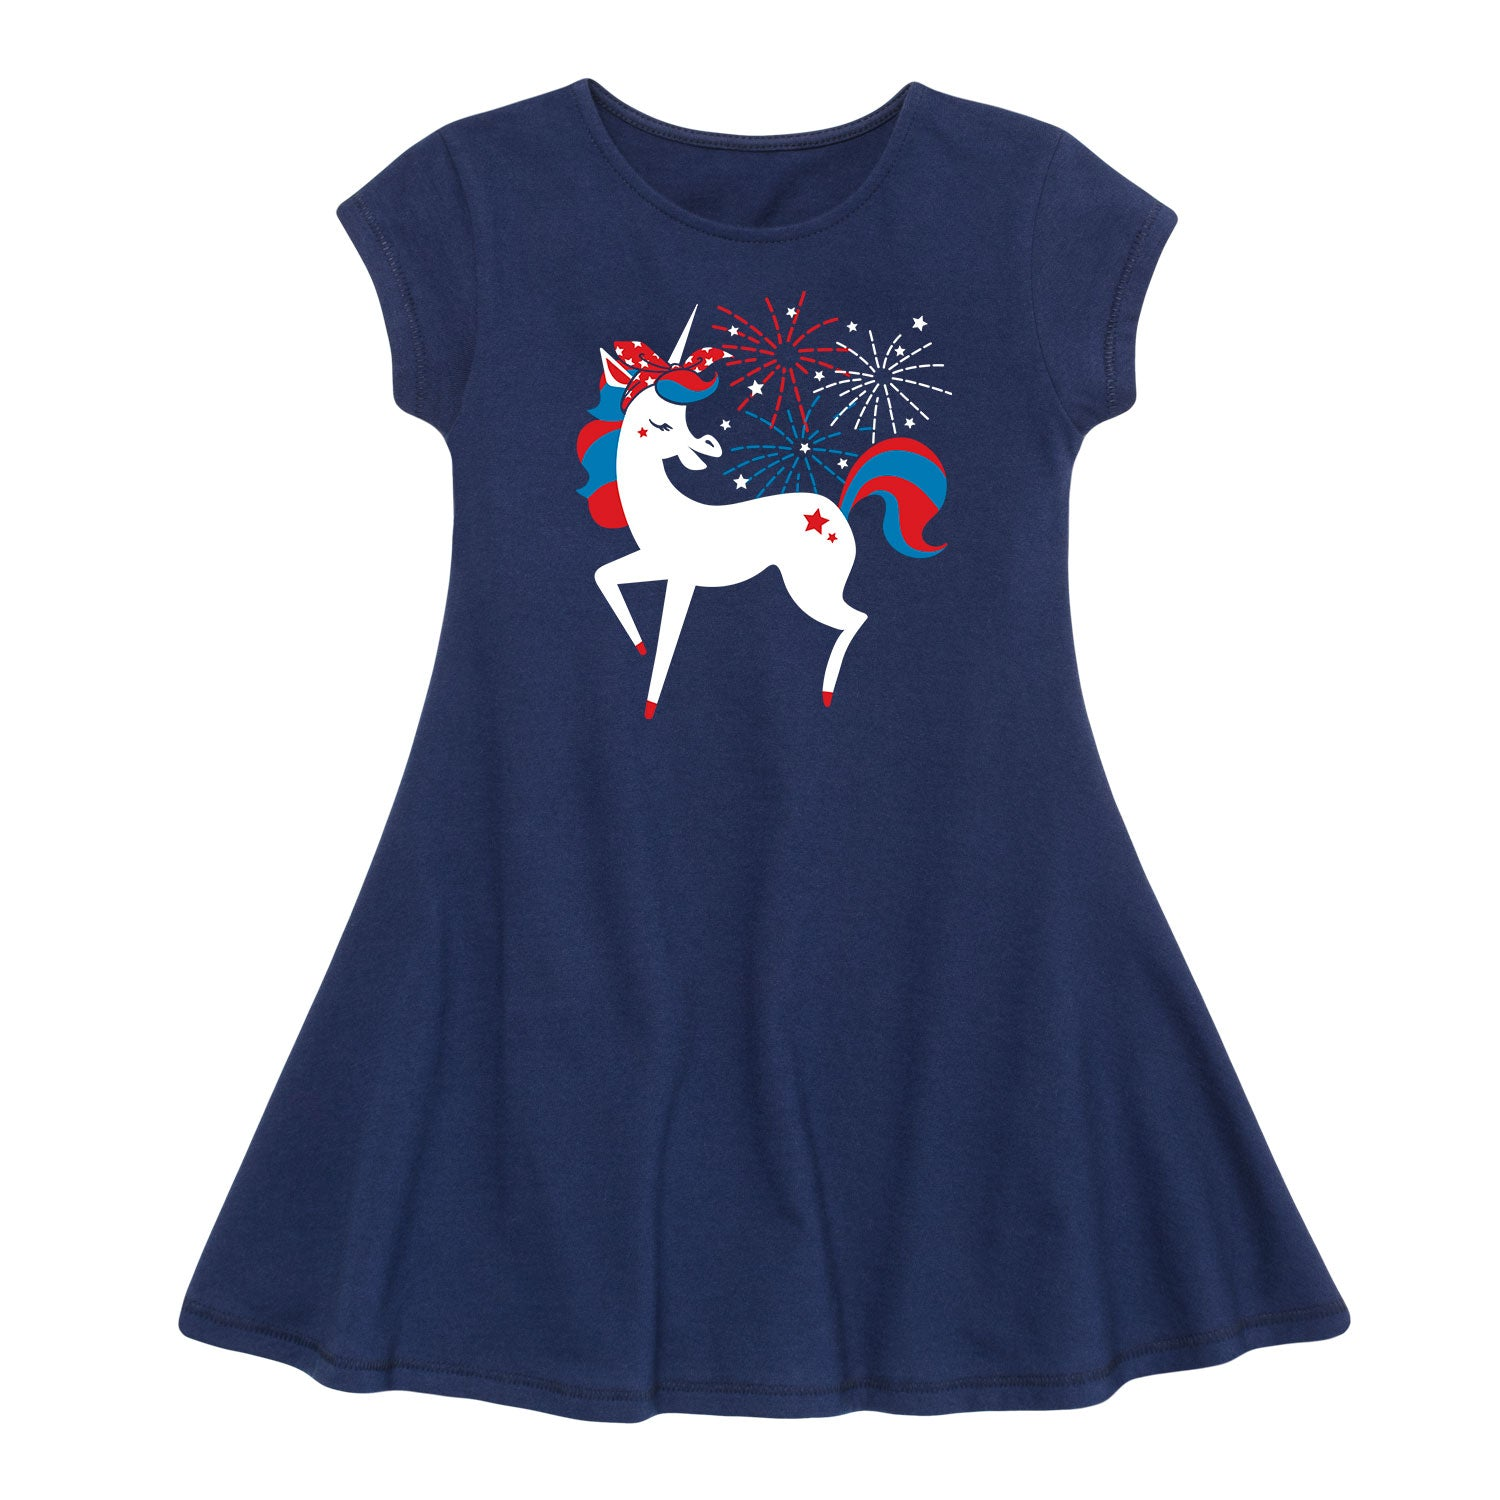 Americana Unicorn - Toddler Girl Fit And Flare Dress